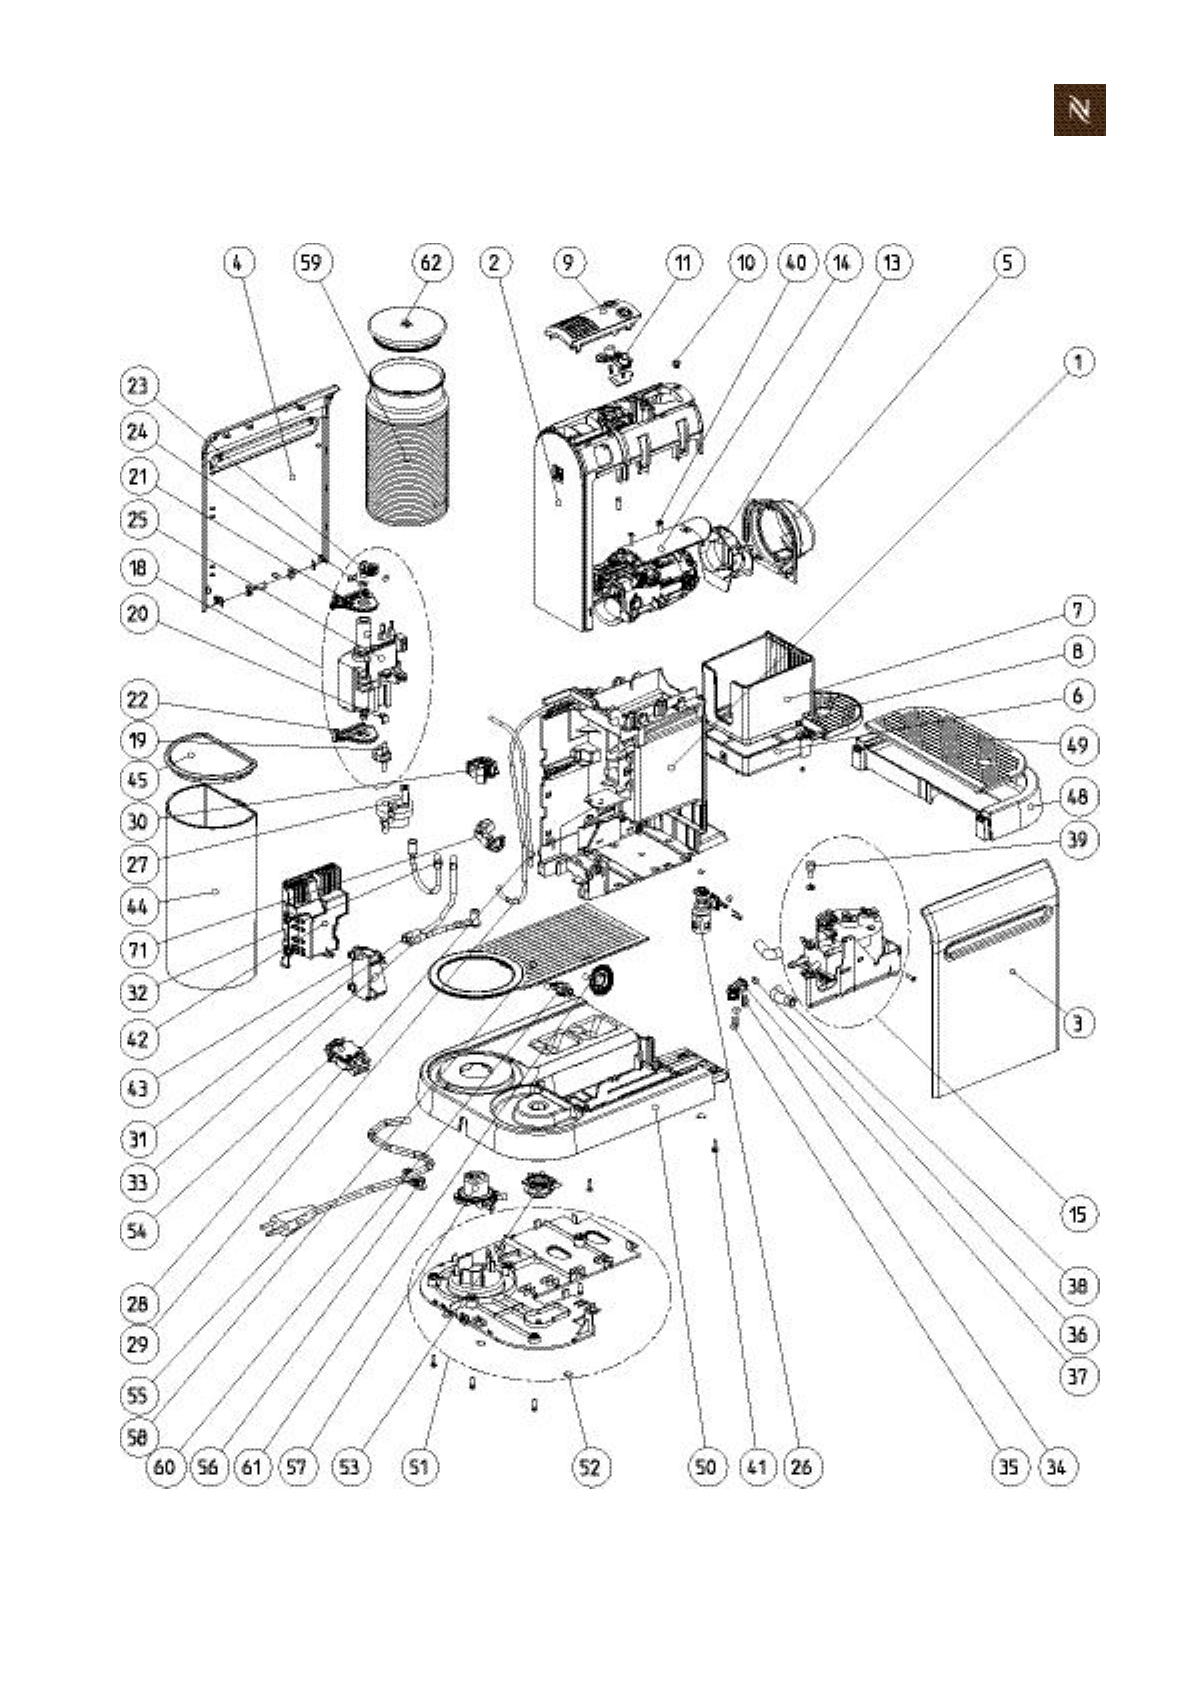 Page 151 of Nespresso Coffeemaker EF483/484 User Guide